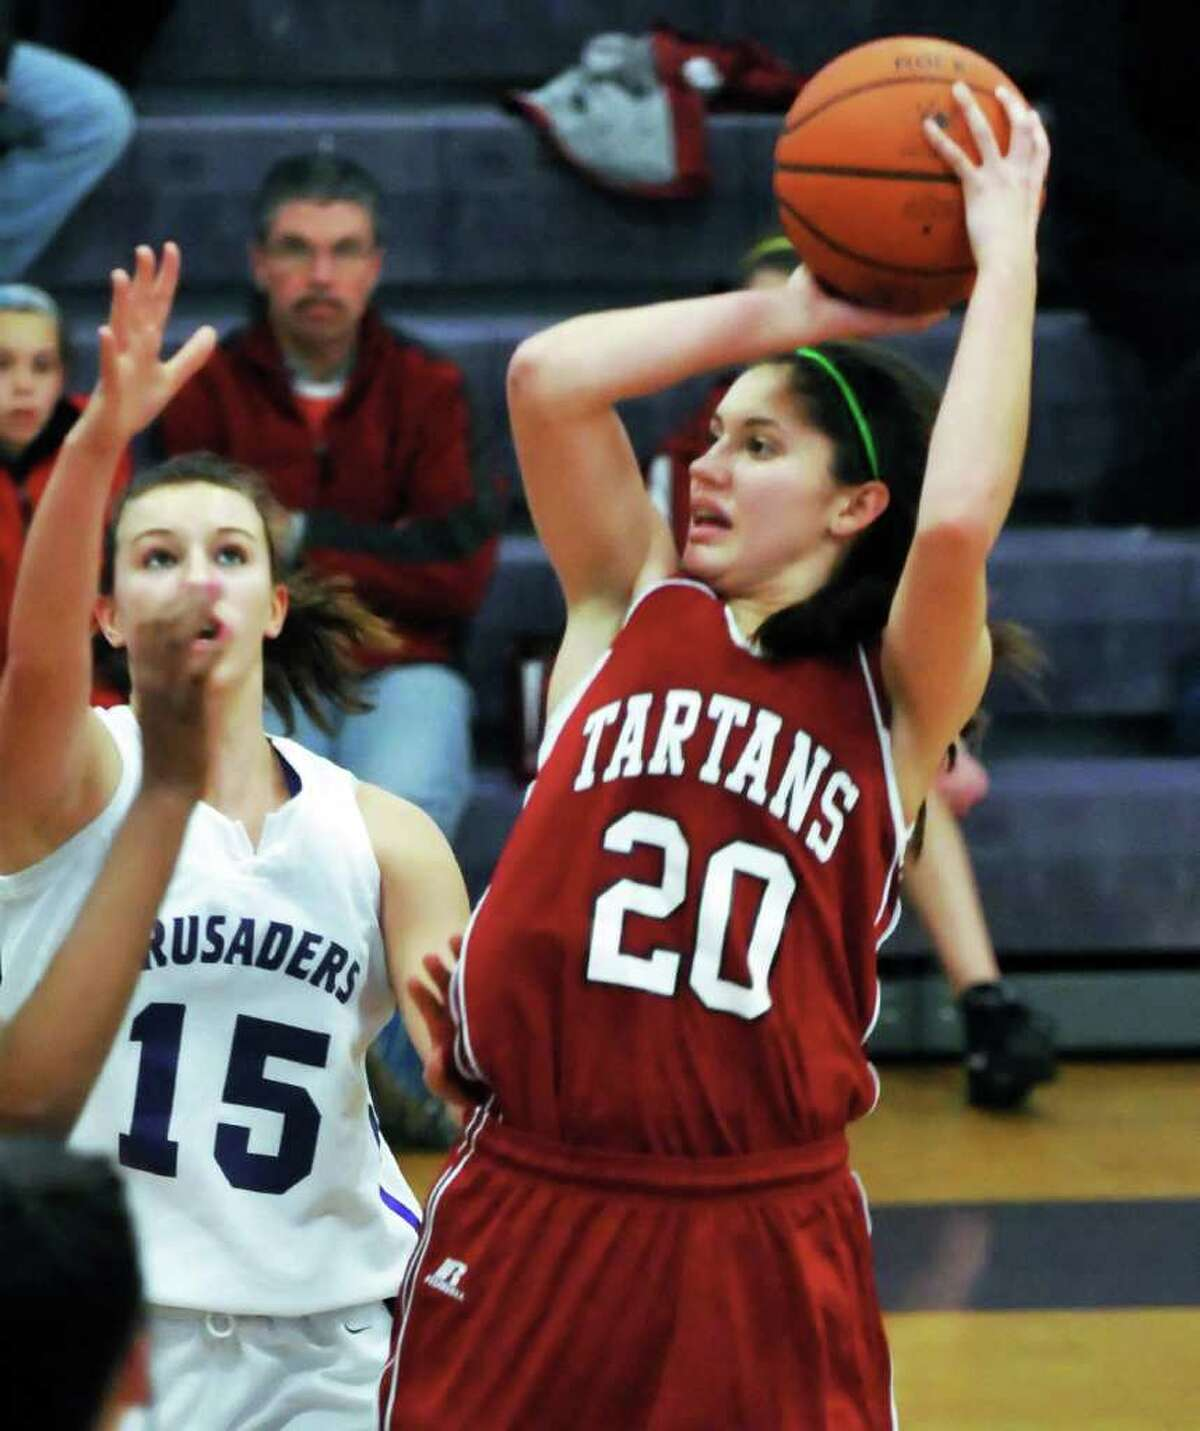 Scotia?s Cassie Broadhead is averaging 16.5 points per game along with 4.6 assists and 6.5 rebounds this season. (John Carl D'Annibale/Times Union)